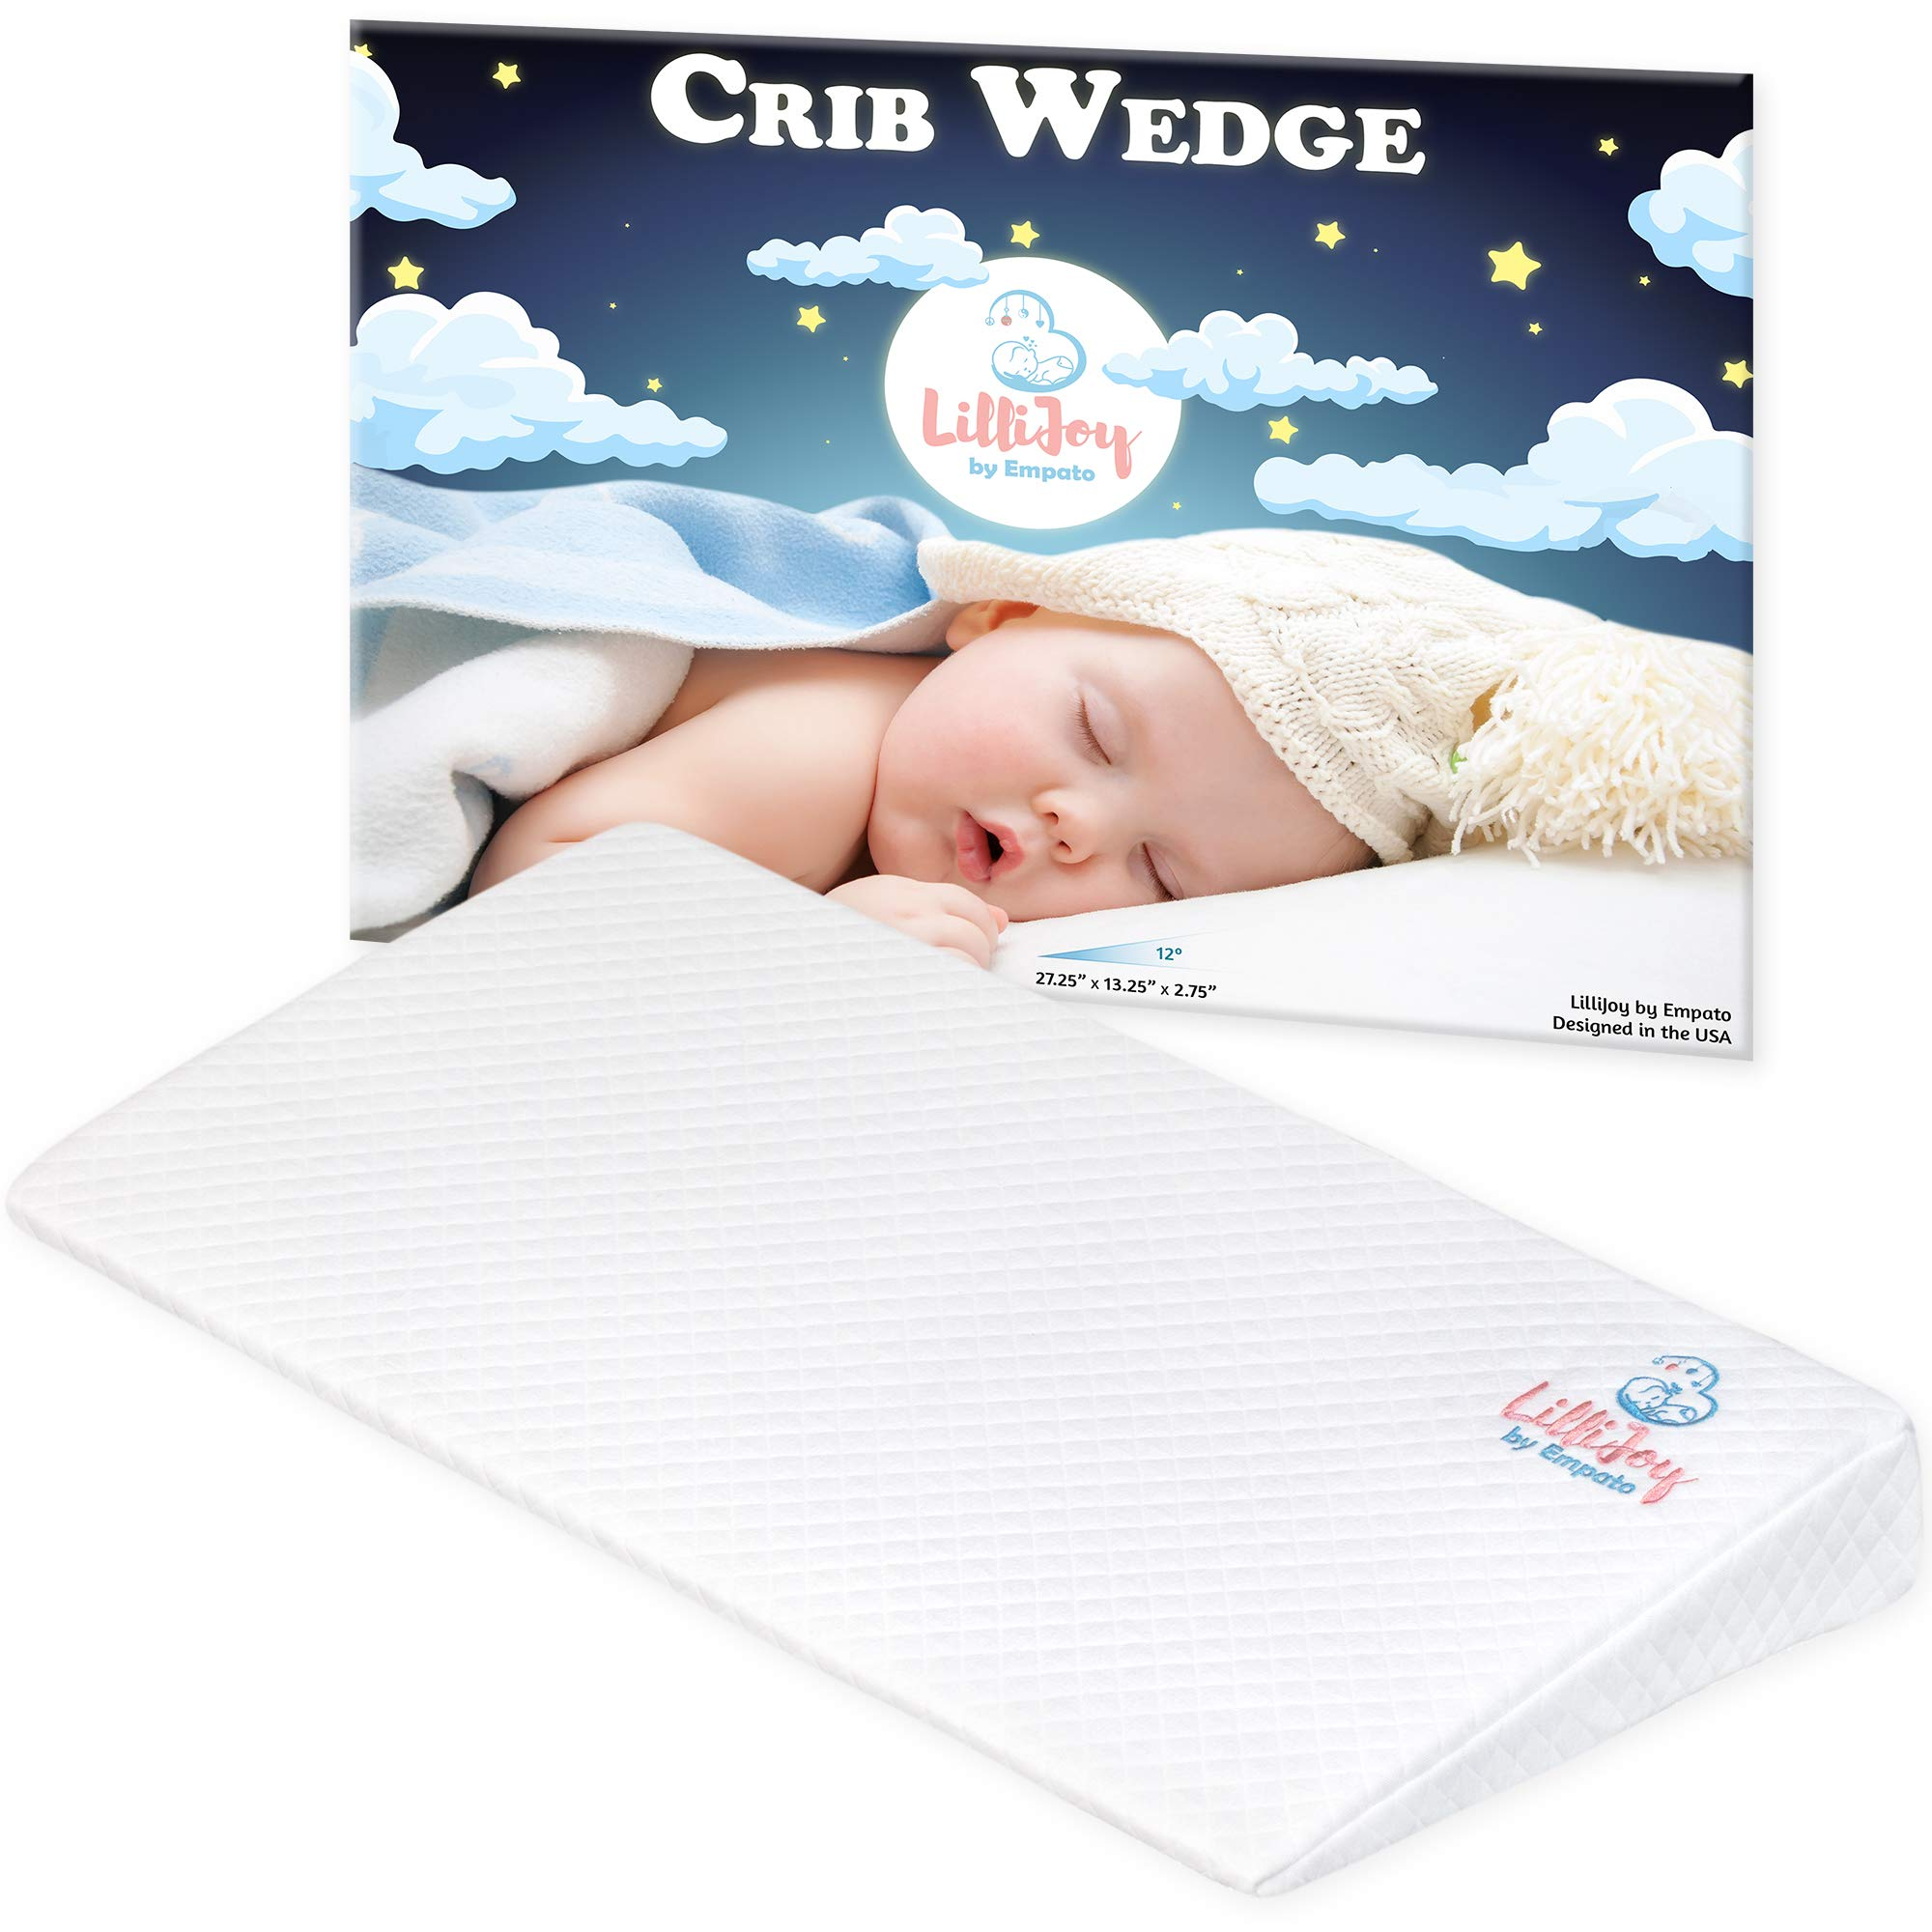 LilliJoy Baby Crib Wedge for Reflux - Premium Infant Sleep Positioner for Acid Reflux & Nasal Congestion - 12 Degree Incline High Sleeper Pillow for Mattress - 100% Cotton Cover - Comfortable & Soft